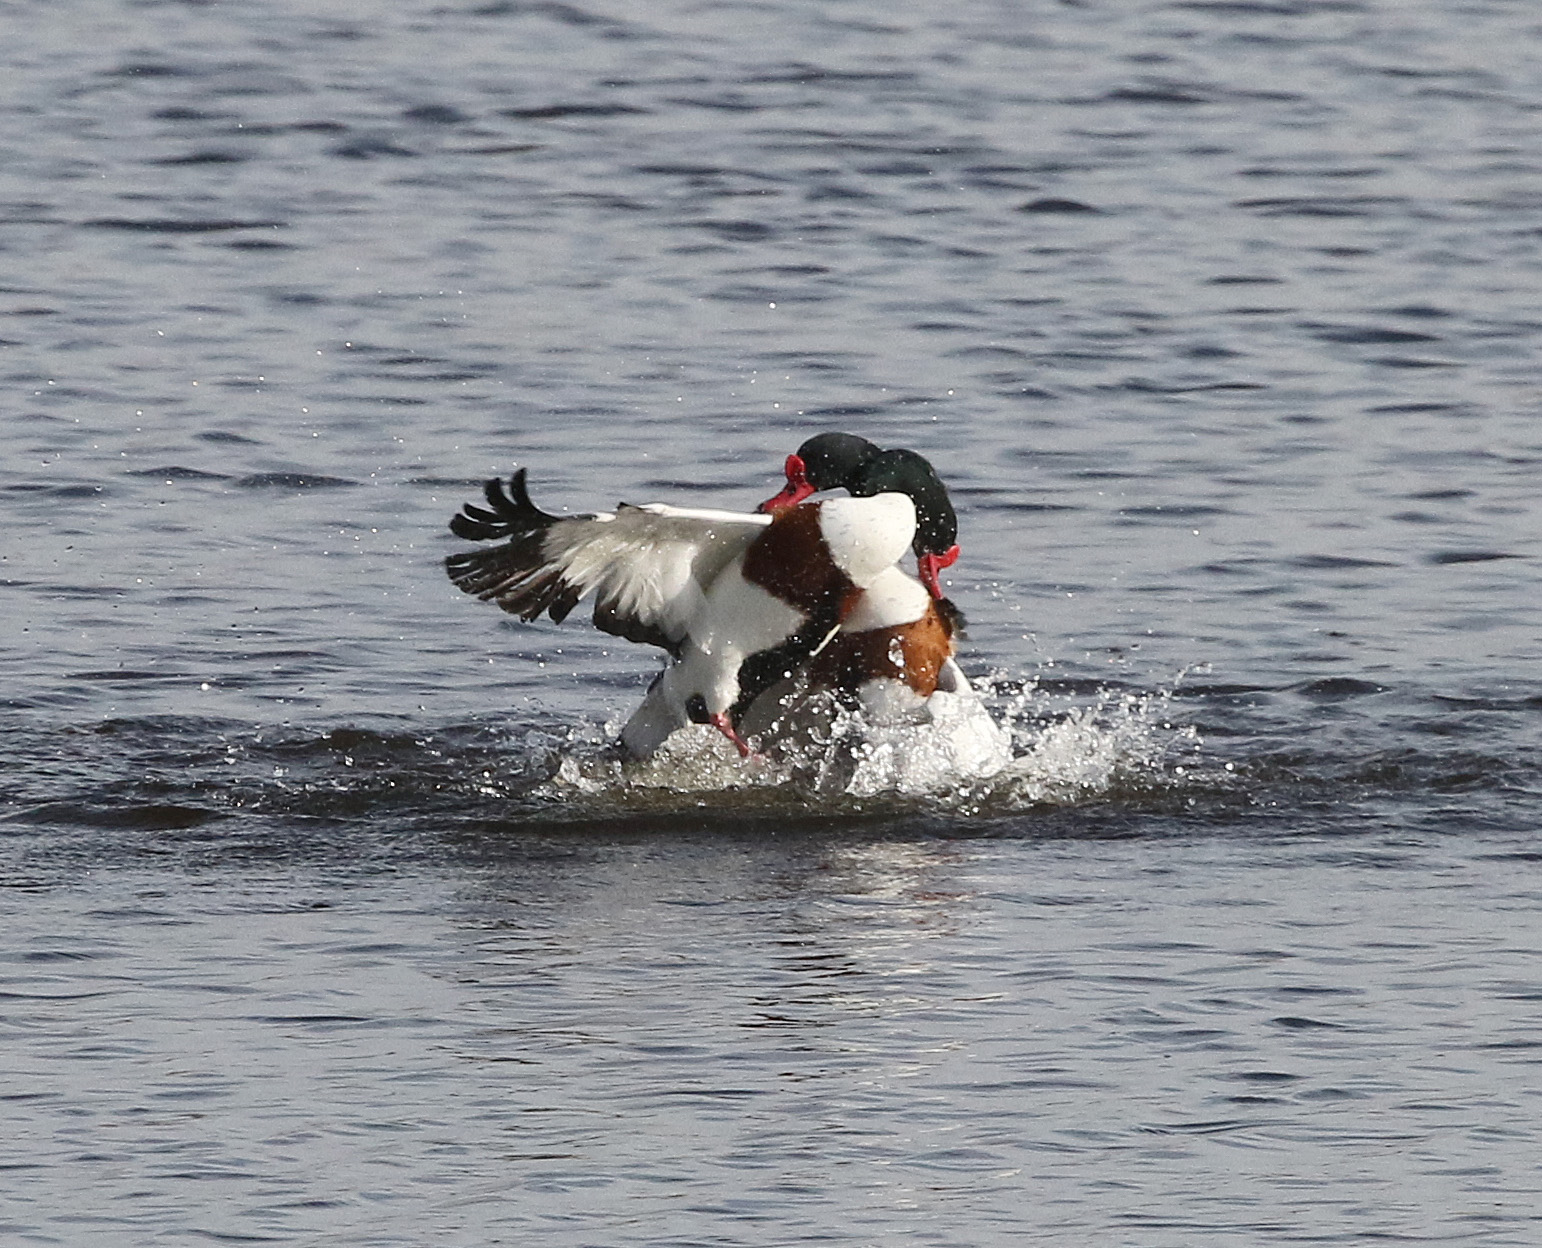 Duck - Typical mergansers